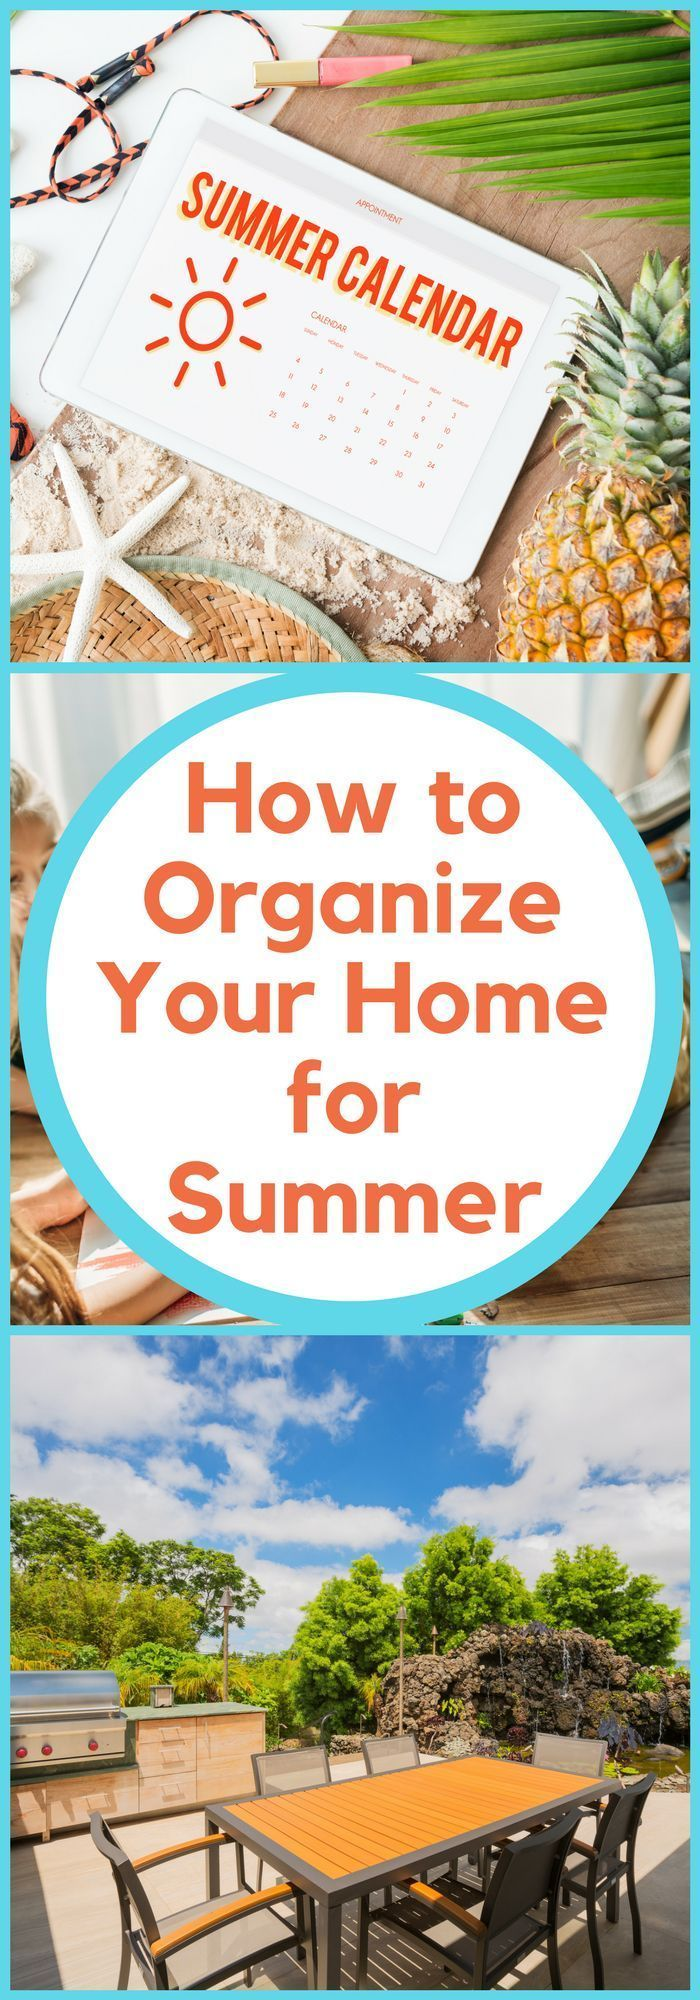 How to Organize Your Home for Summer #summerhomeorganization Organization--How to Organize Your Home for Summer--The Organized Mom #summerhomeorganization How to Organize Your Home for Summer #summerhomeorganization Organization--How to Organize Your Home for Summer--The Organized Mom #summerhomeorganization